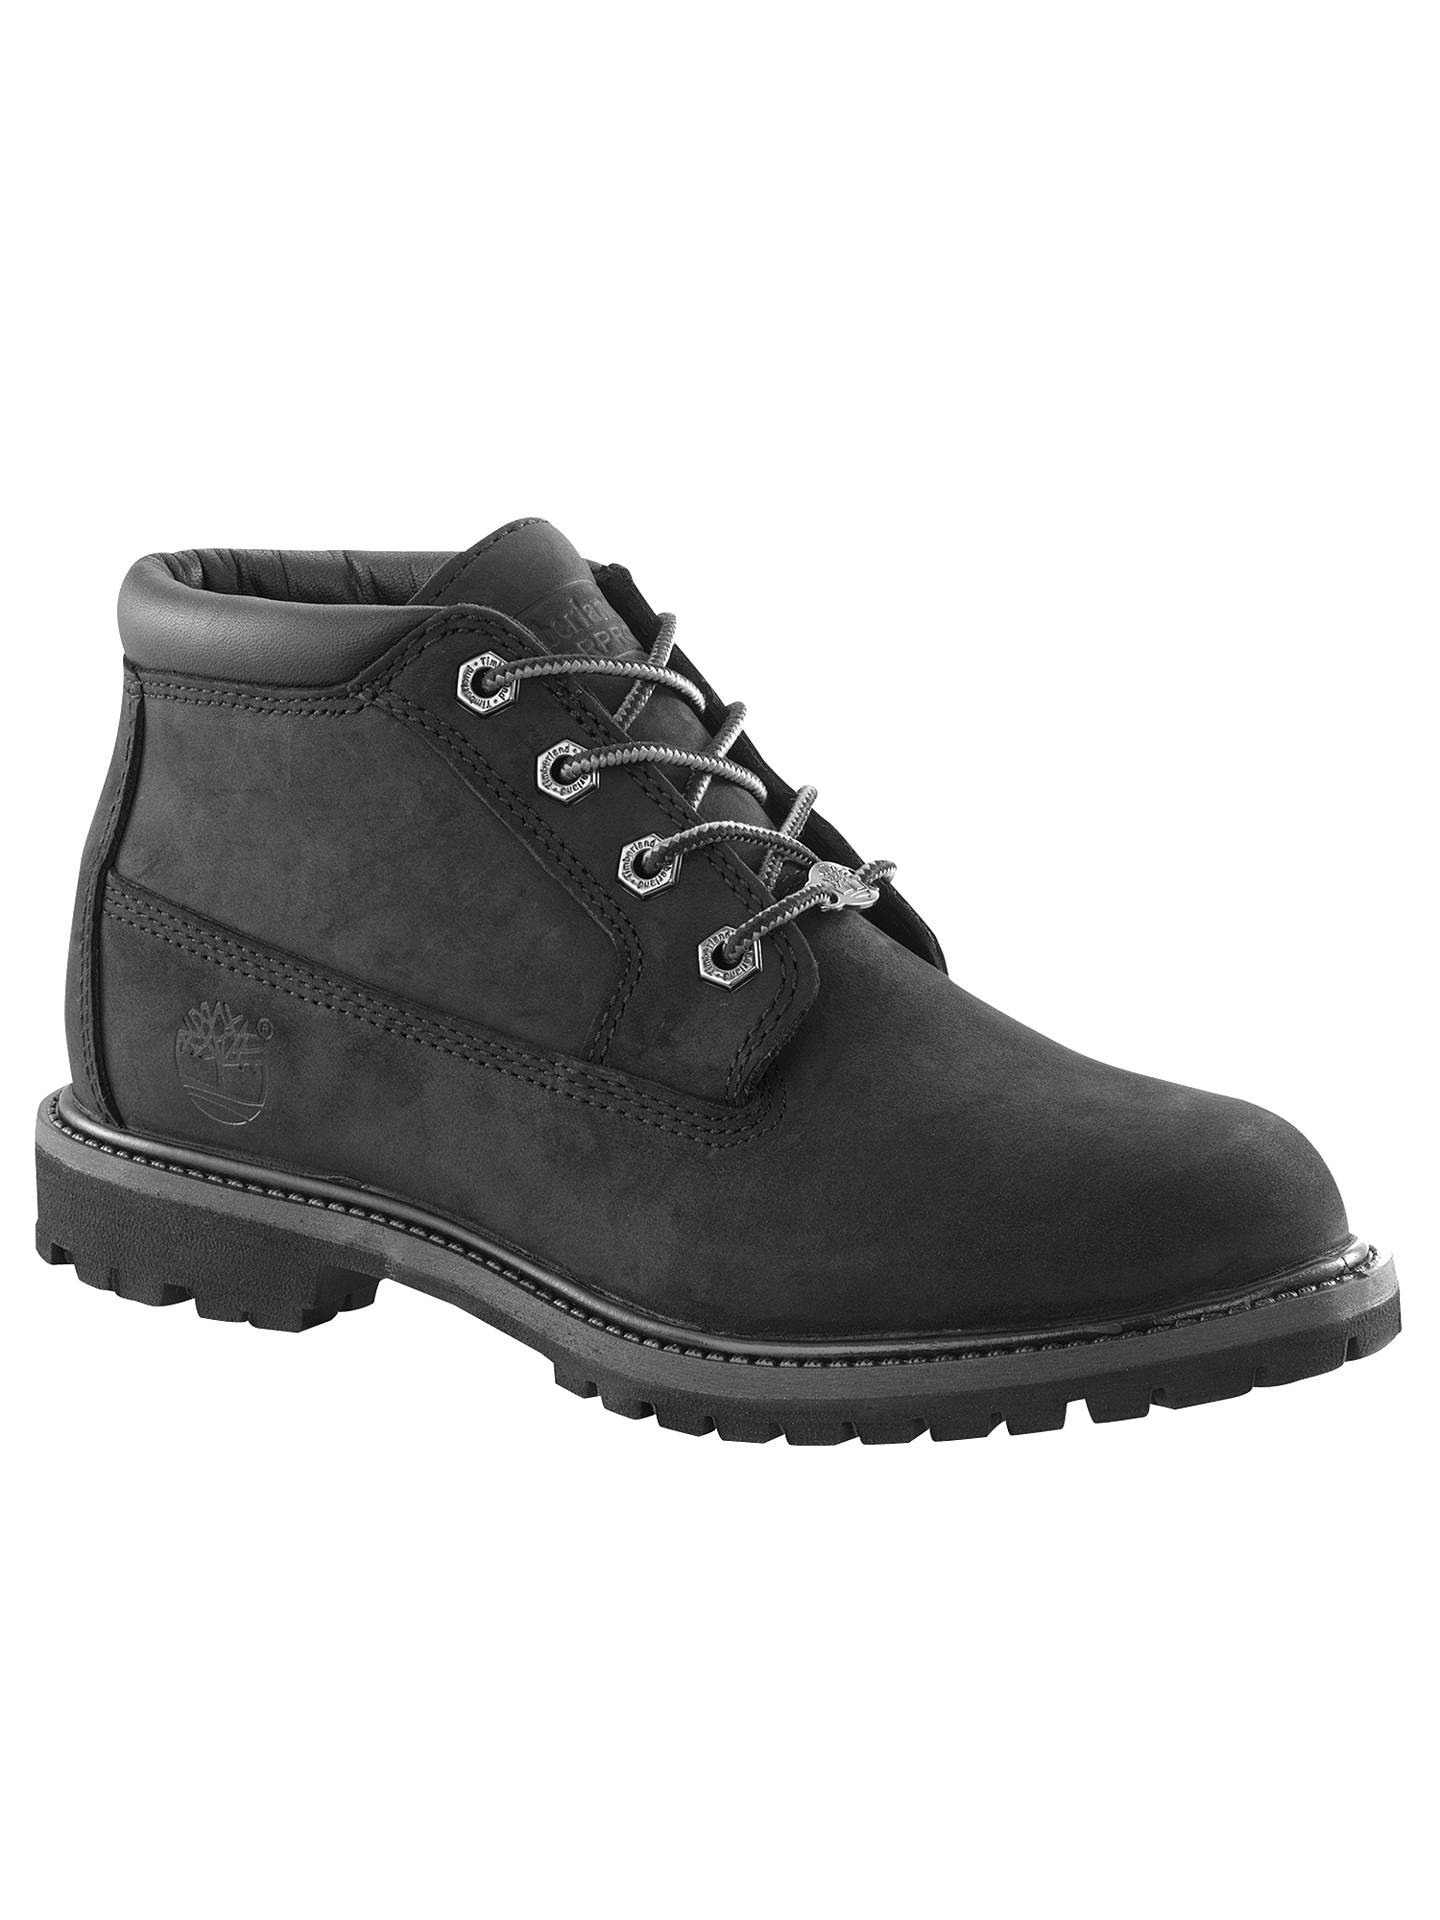 Timberland Nellie Chukka Double Waterproof Boots at John Lewis ... 2f35b4467